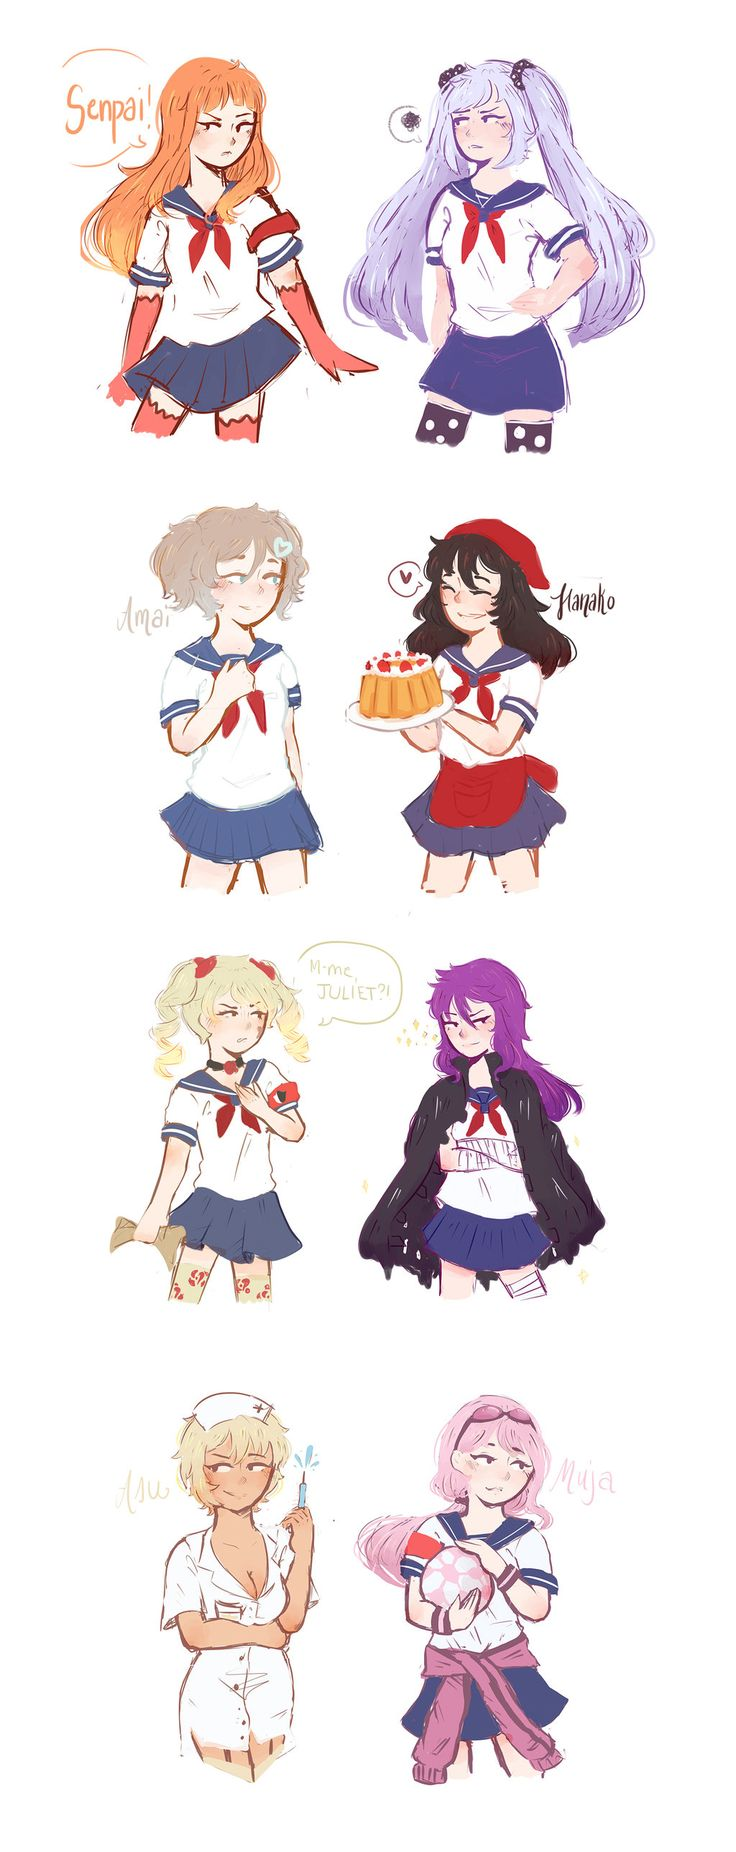 Yandere Simulator : Outfit Swap by ado-mi on DeviantArt